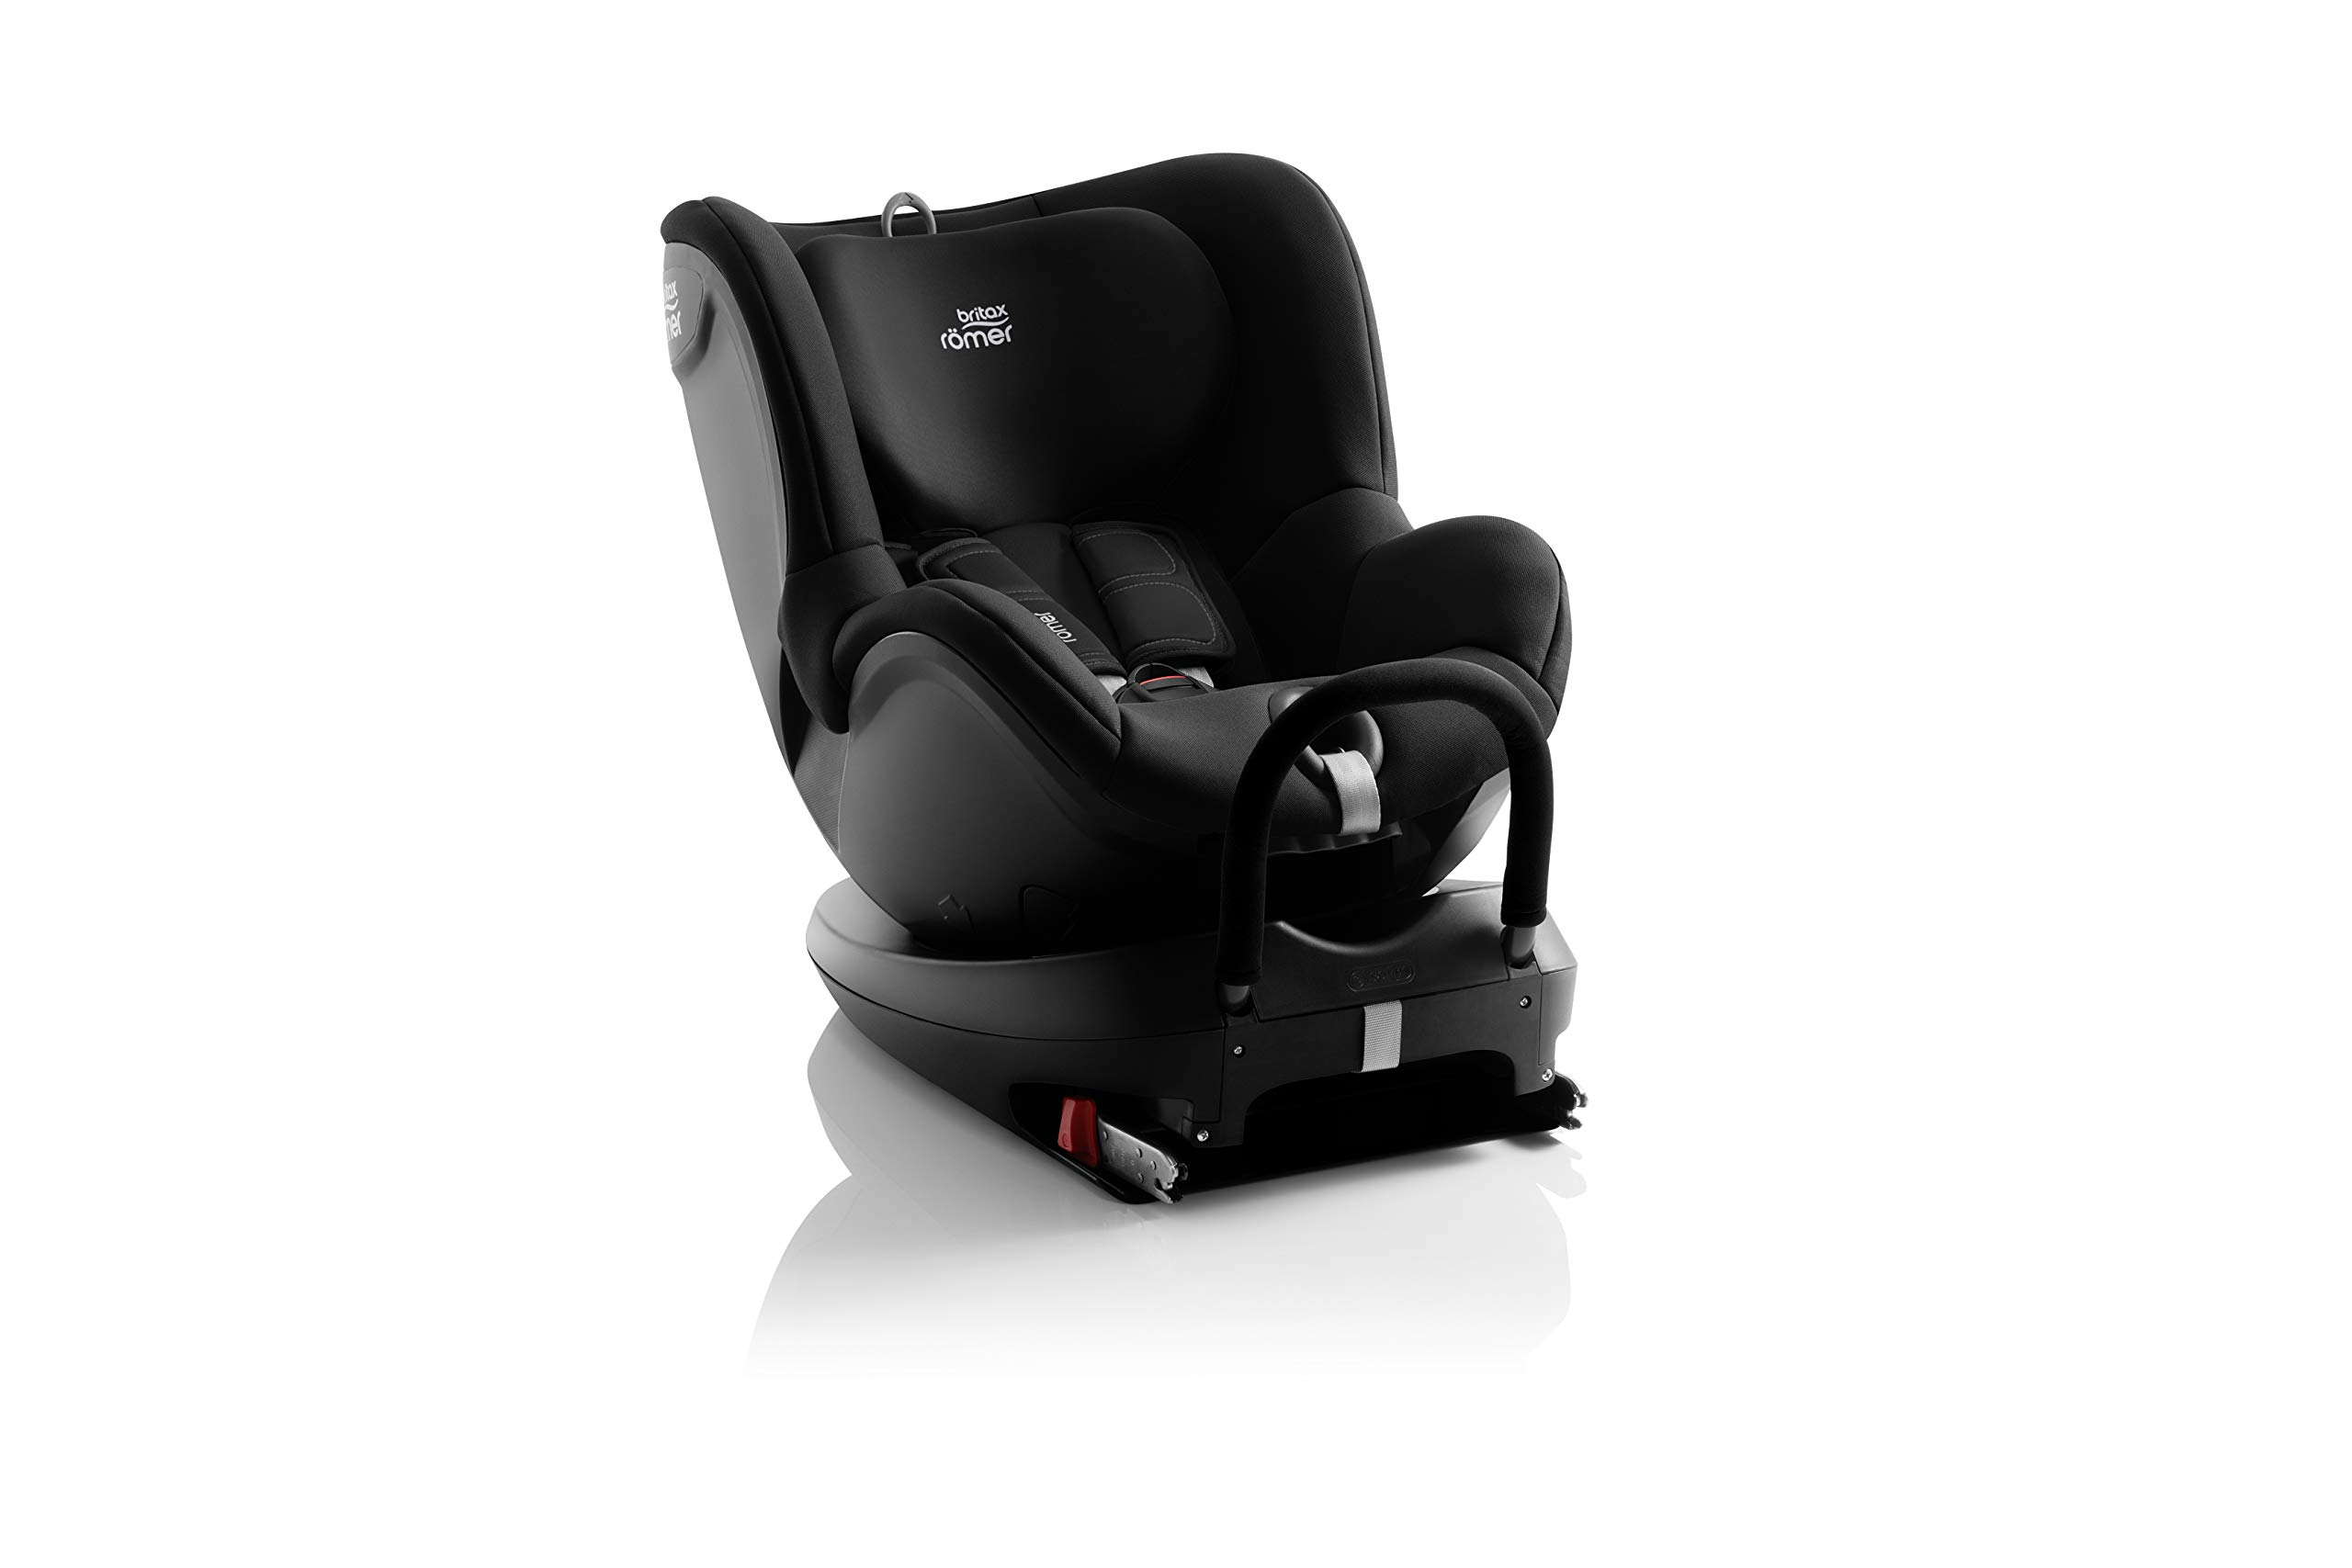 Britax Römer DUALFIX² R Group 0+1 (Birth-18 kg) Car Seat, Cosmos Black Britax Römer Intuitive 360° rotation for rearward and forward facing usage Easy entry with 90 degree rotation to the open door for easy placement of the child Extended rearward facing travel with more leg space thanks to shorter rebound bar 3